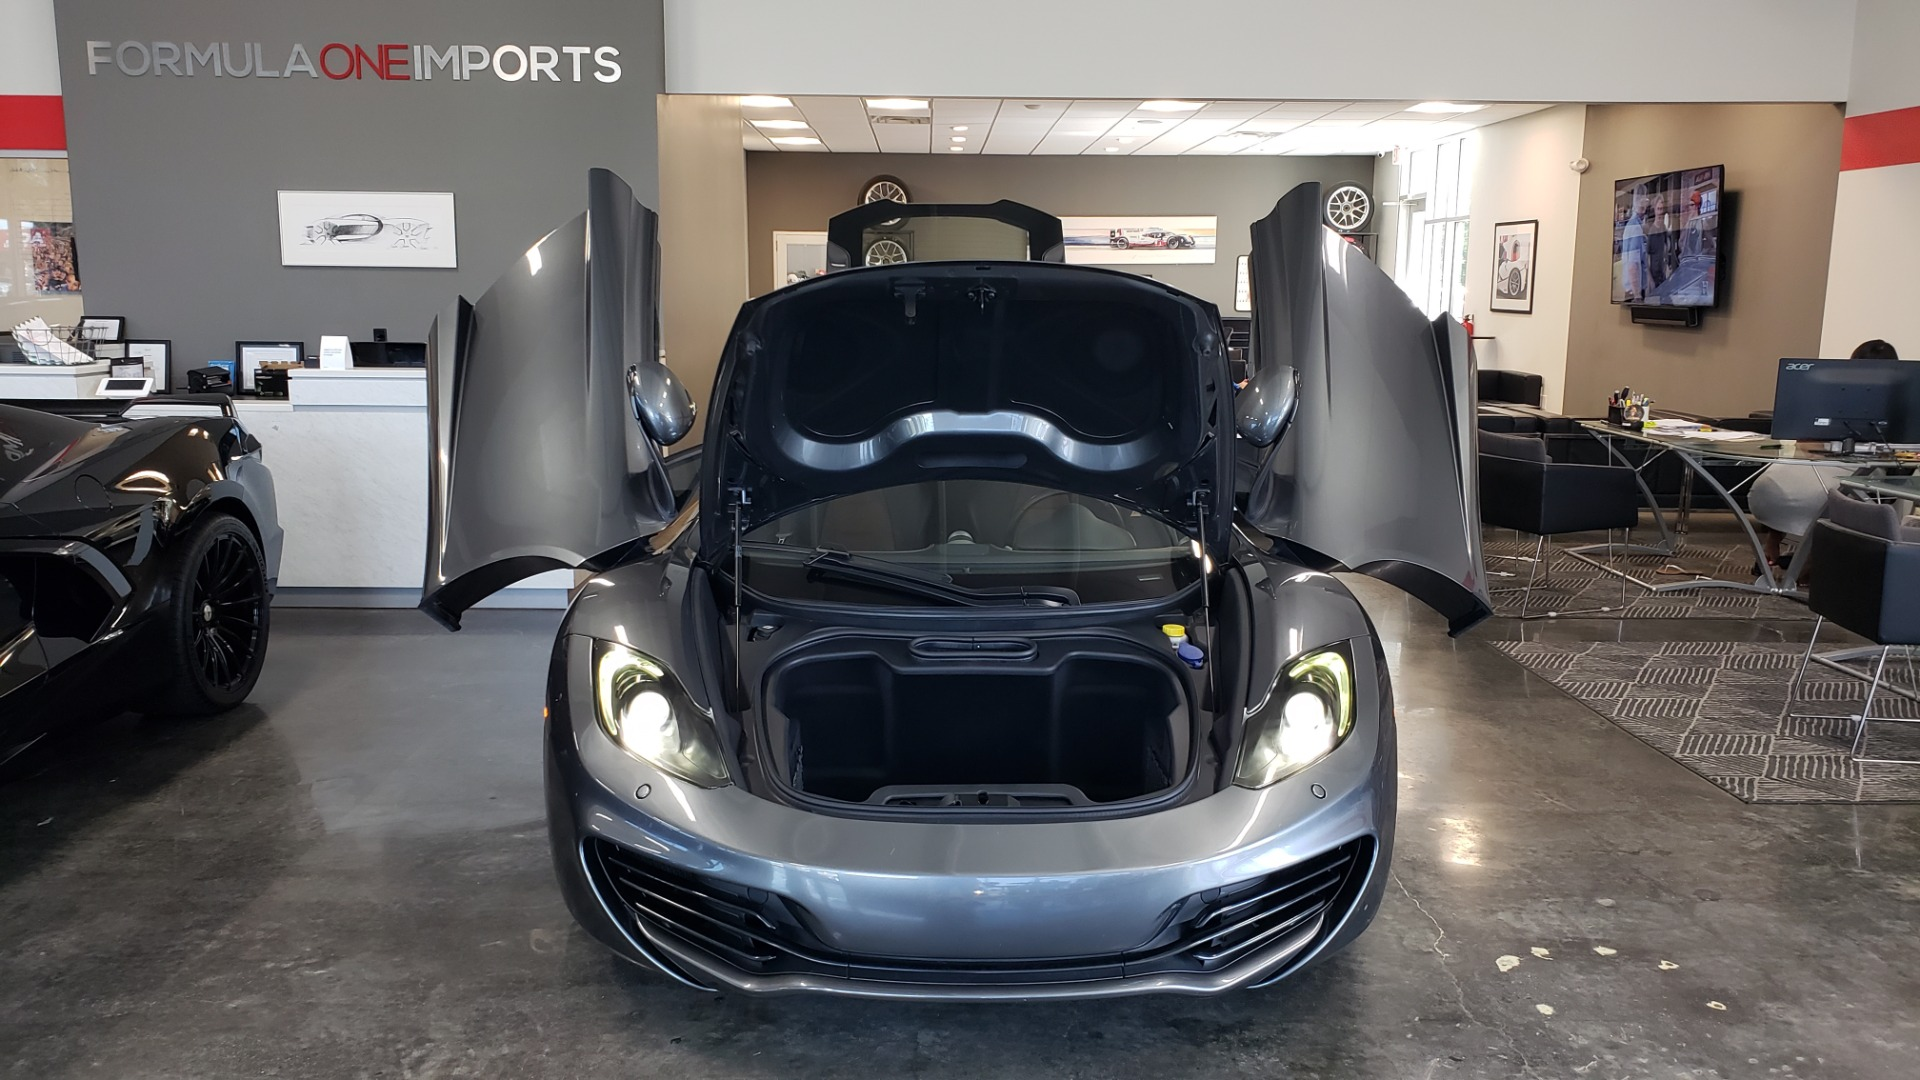 Used 2012 McLaren MP4-12C COUPE / 3.8 L V8 592HP / AUTO / NAV / CCB / LOW MILES for sale Sold at Formula Imports in Charlotte NC 28227 83